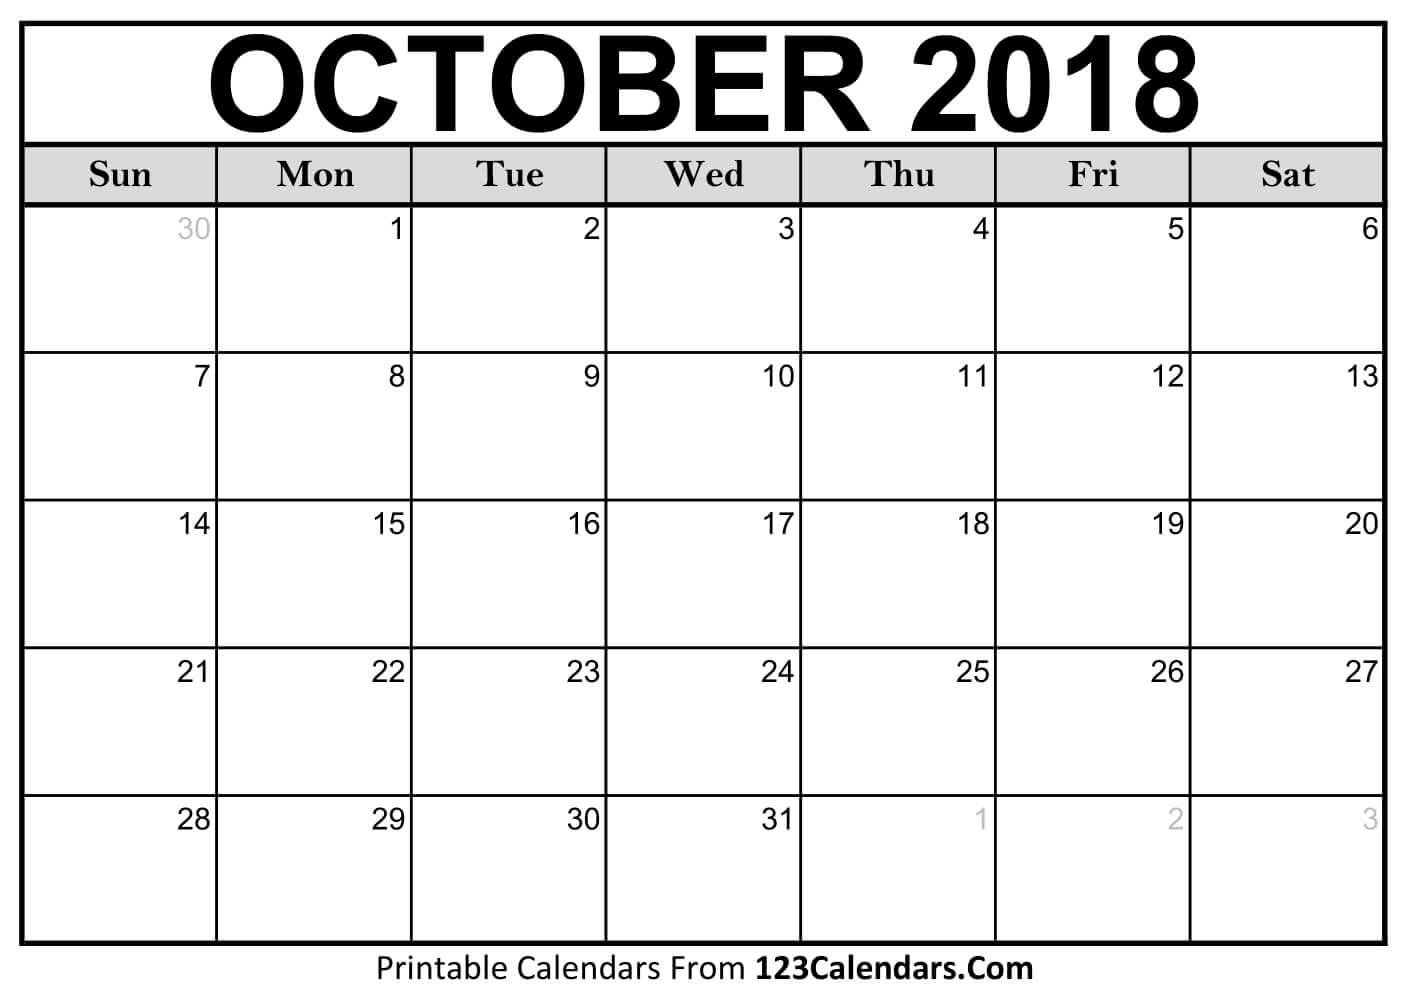 Calendar For October 2018 Sheet